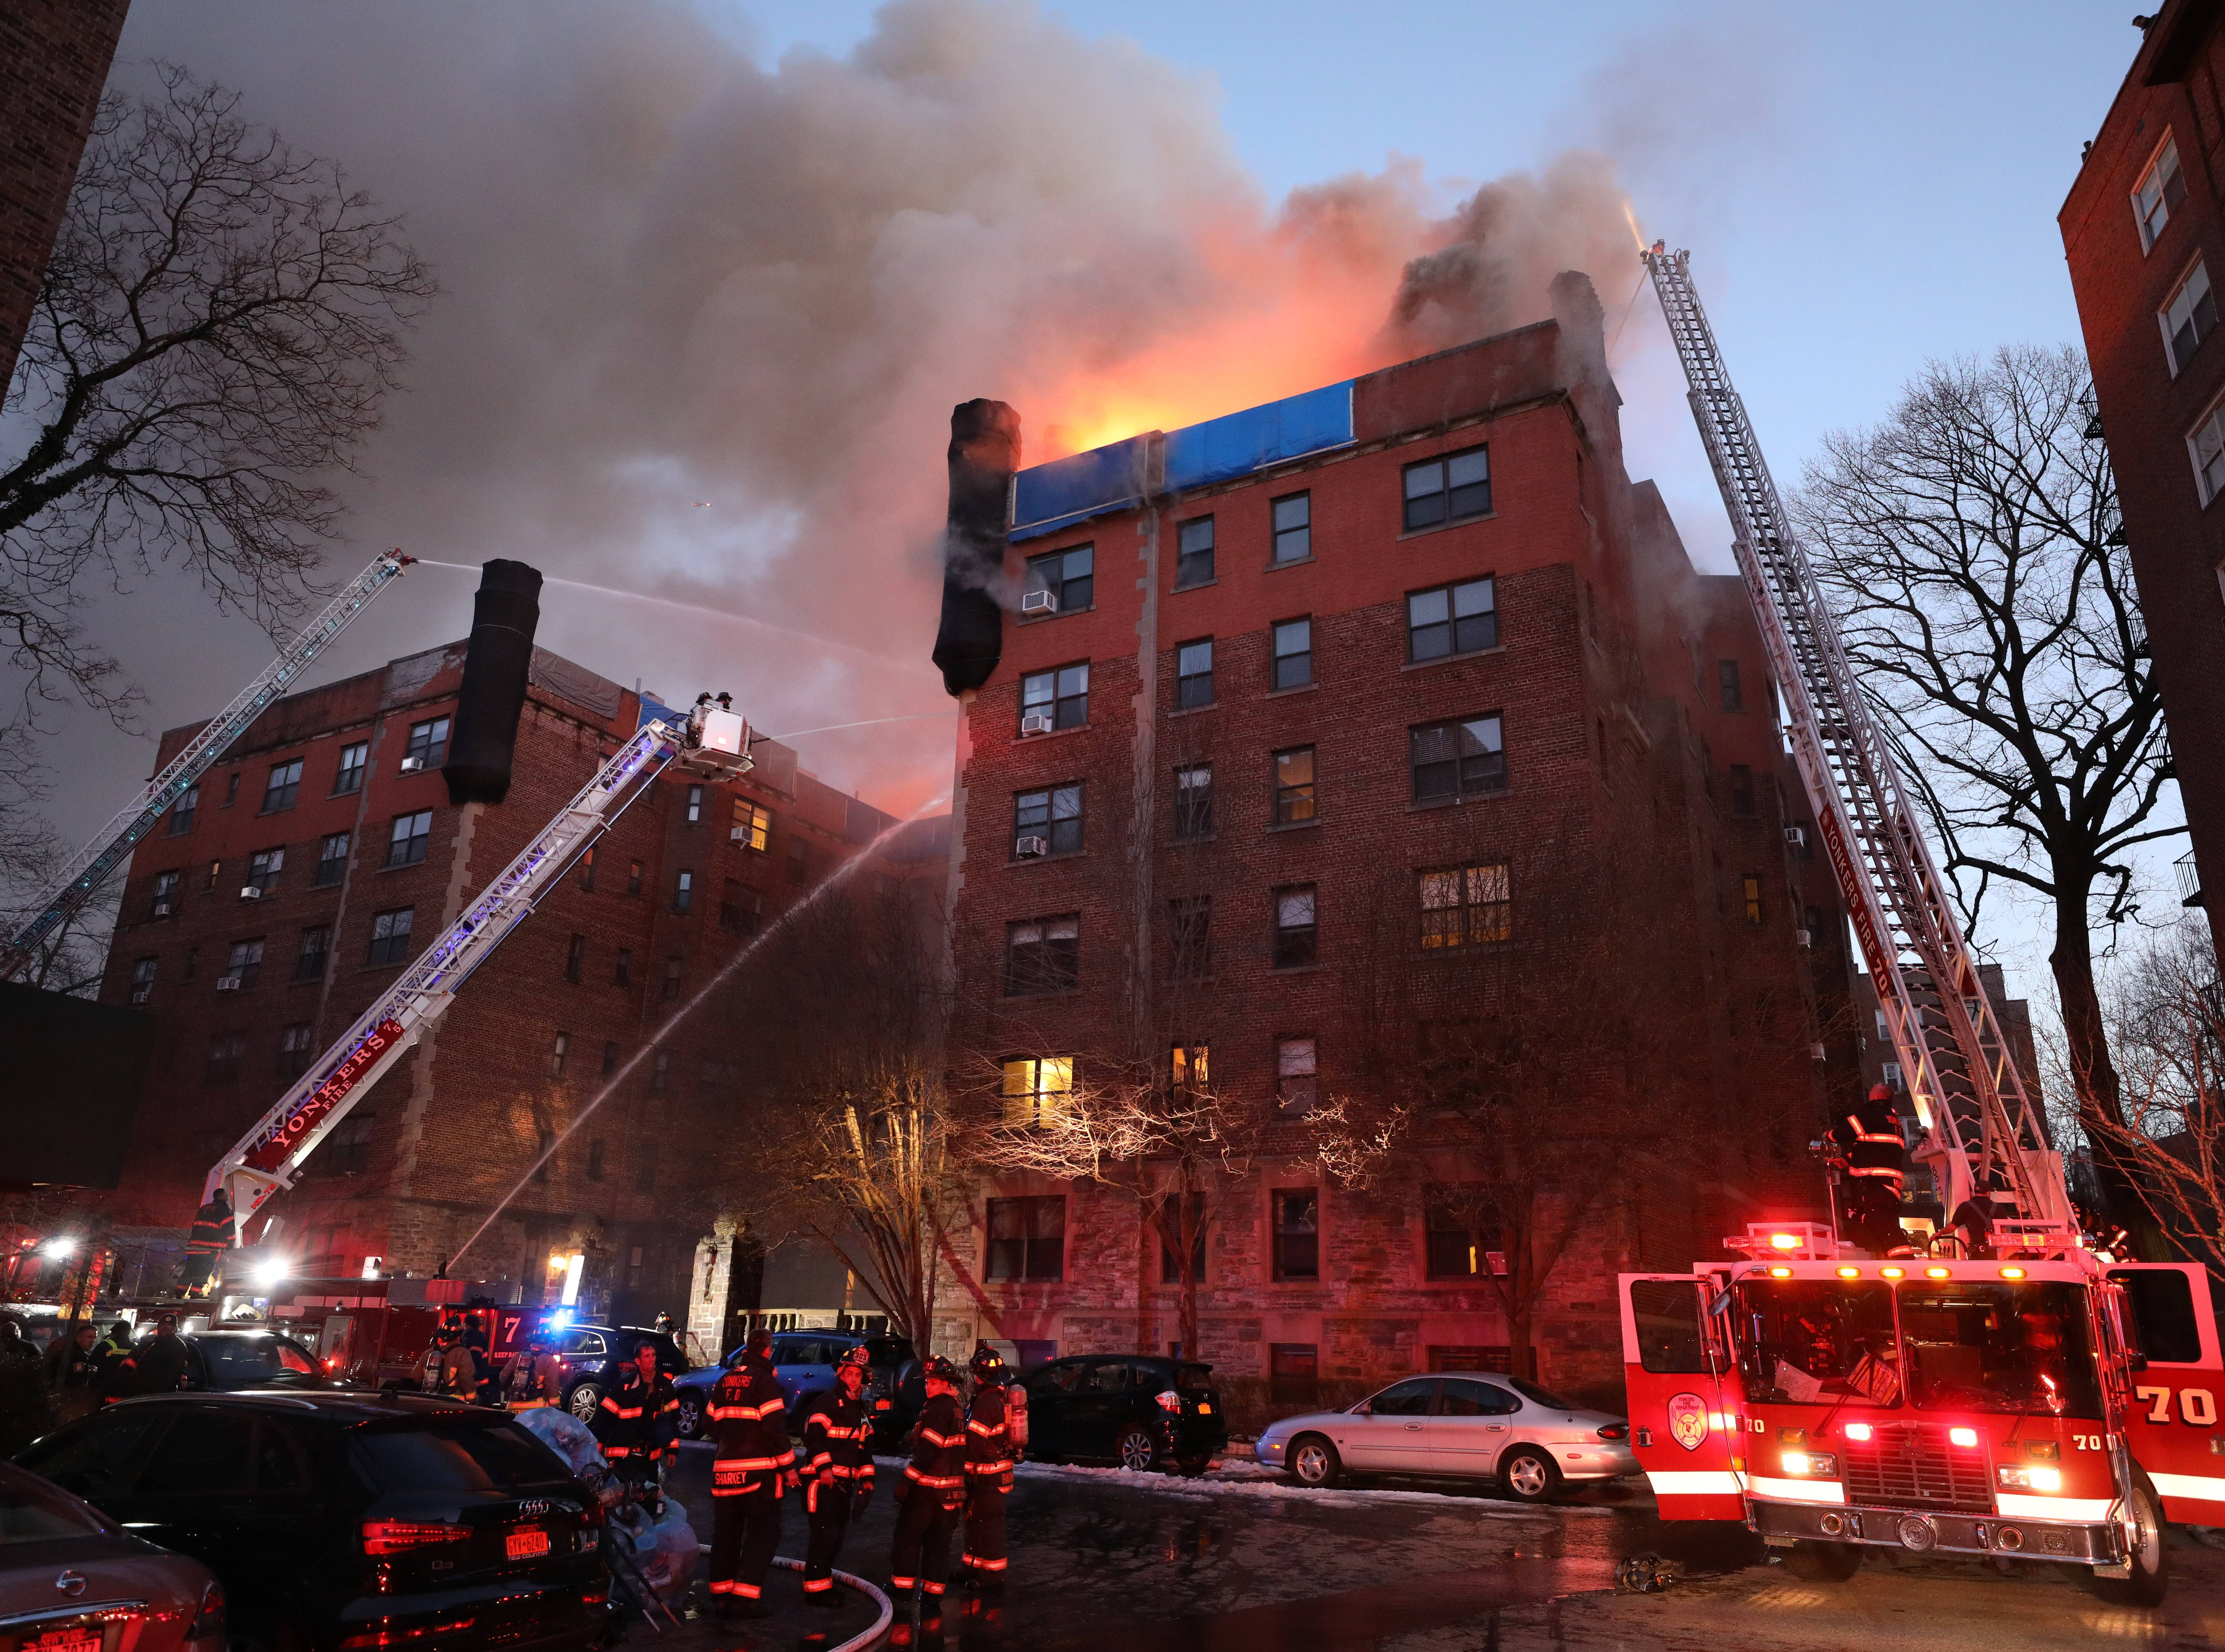 Flames leap from the roof as Yonkers firefighters battle a four alarm fire at 15 Parkview Avenue in Yonkers, March 12, 2019.